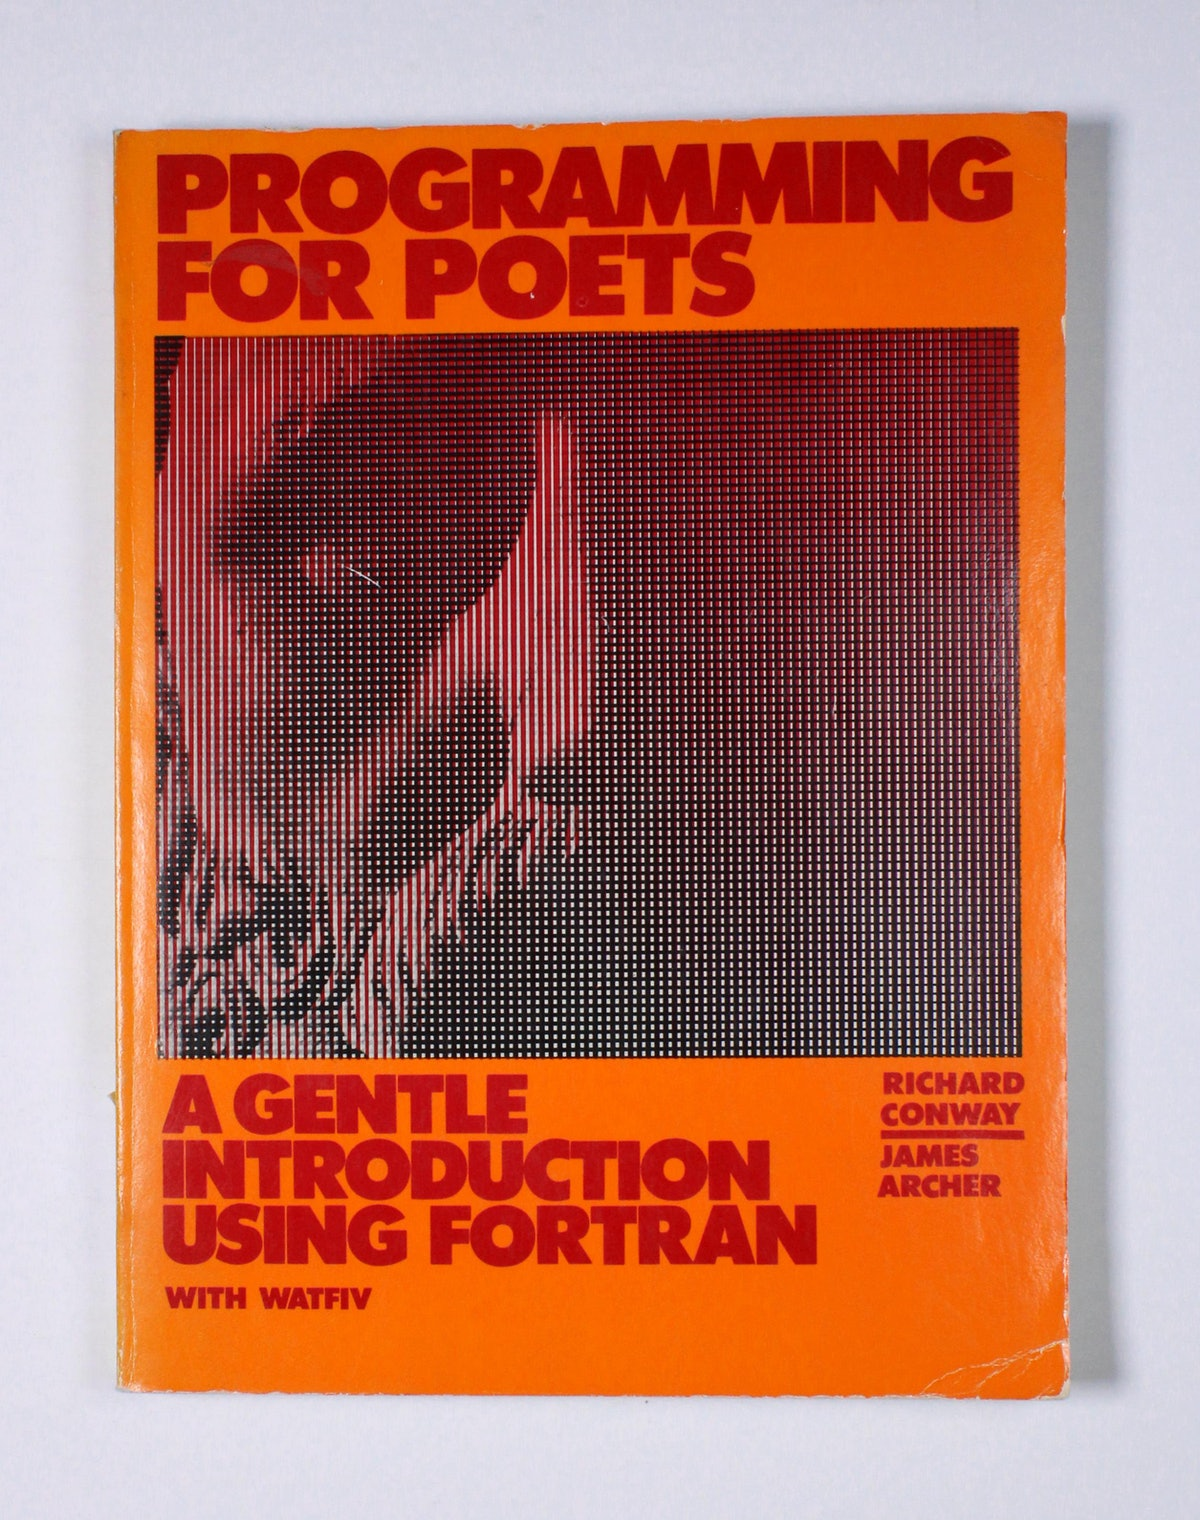 Programming for Poets: A Gentle Introduction Using FORTRAN with WATFIV